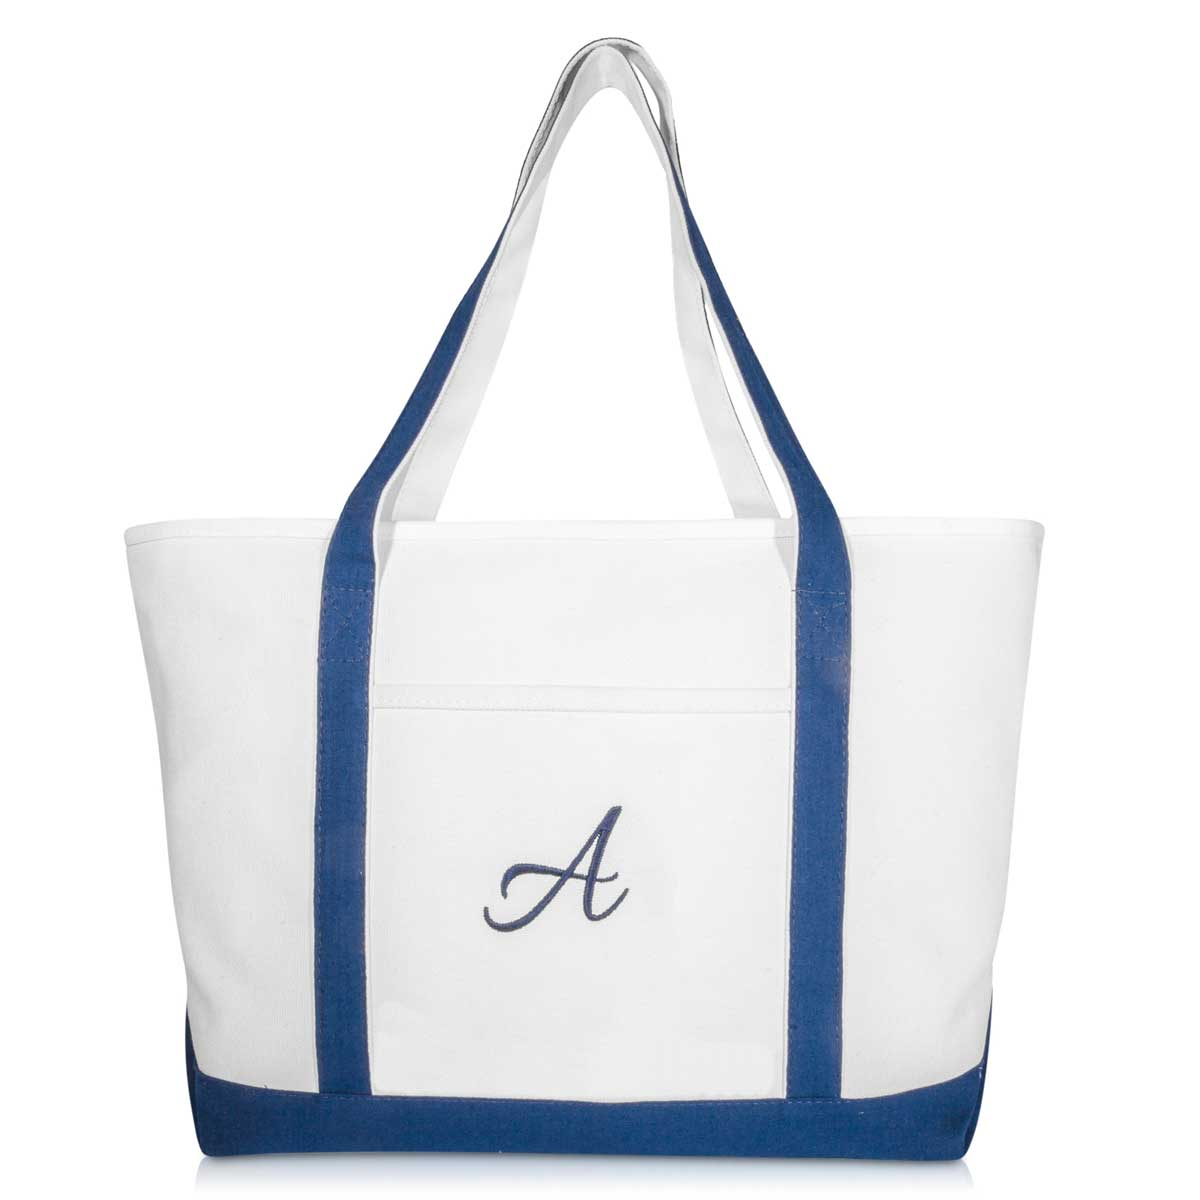 a24352c673 DALIX Quality Canvas Tote Bags Large Beach Bags Navy Blue Monogrammed A-Z